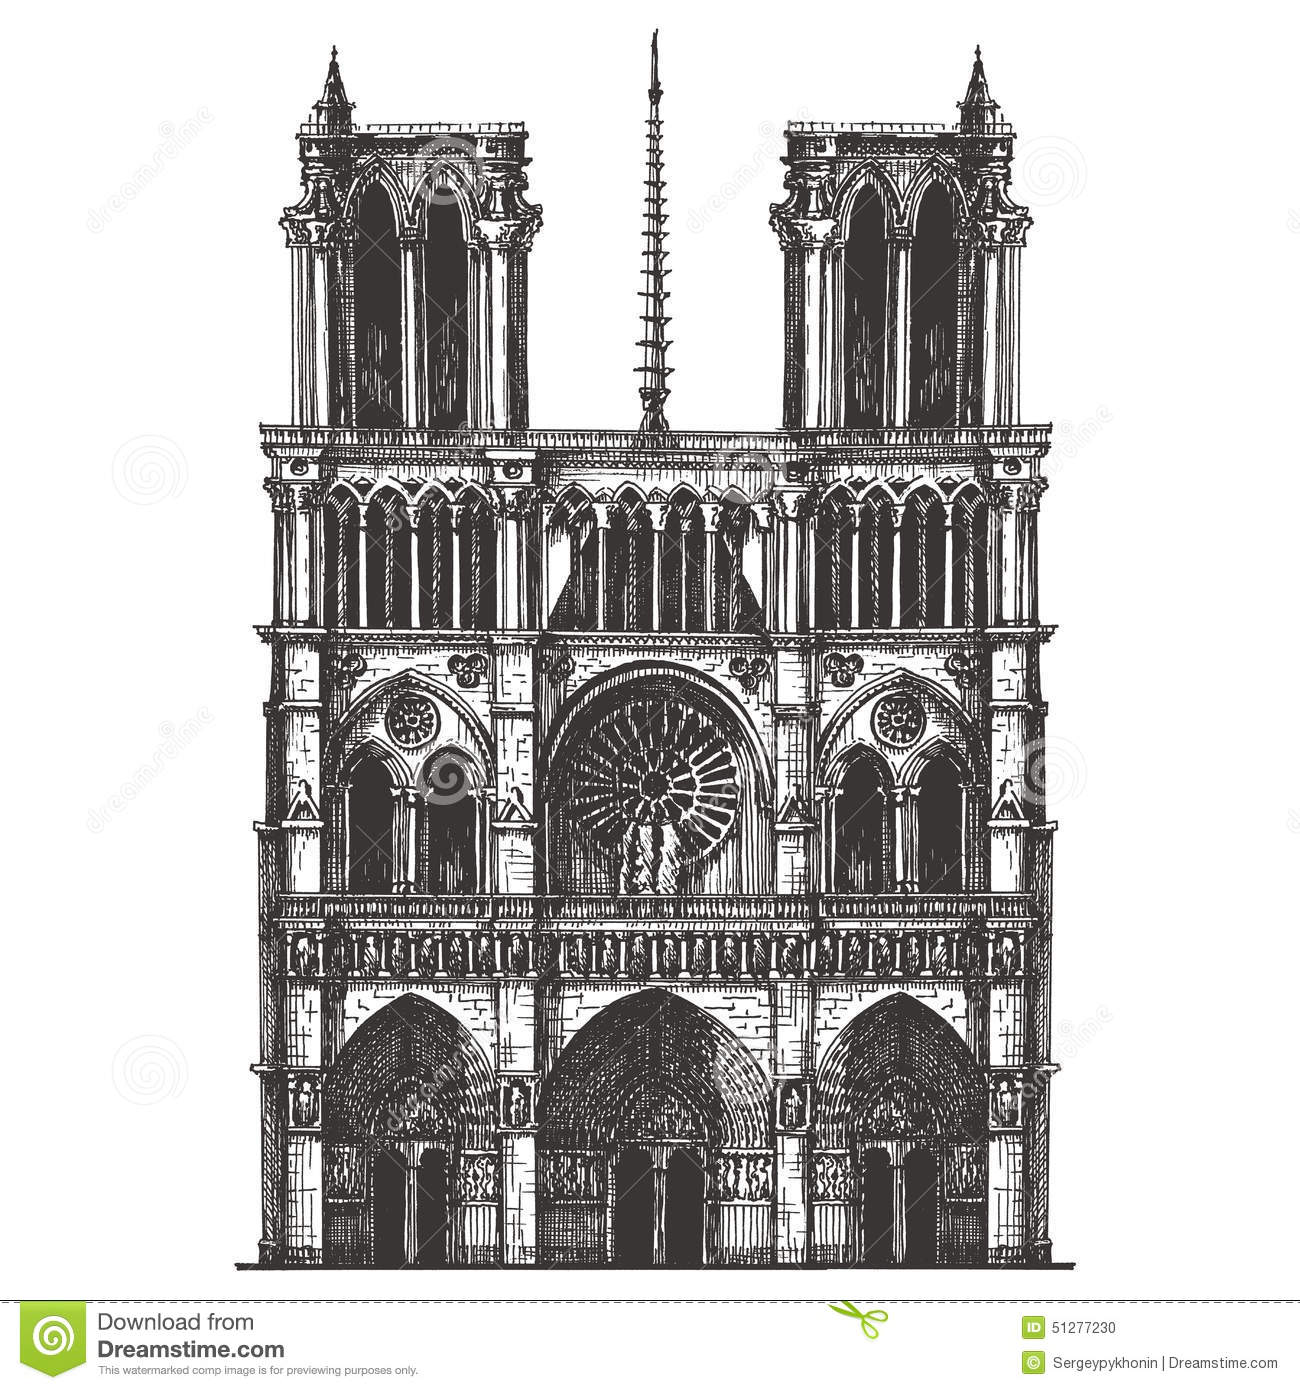 The architecture of notre dame de paris a historic catholic cathedral